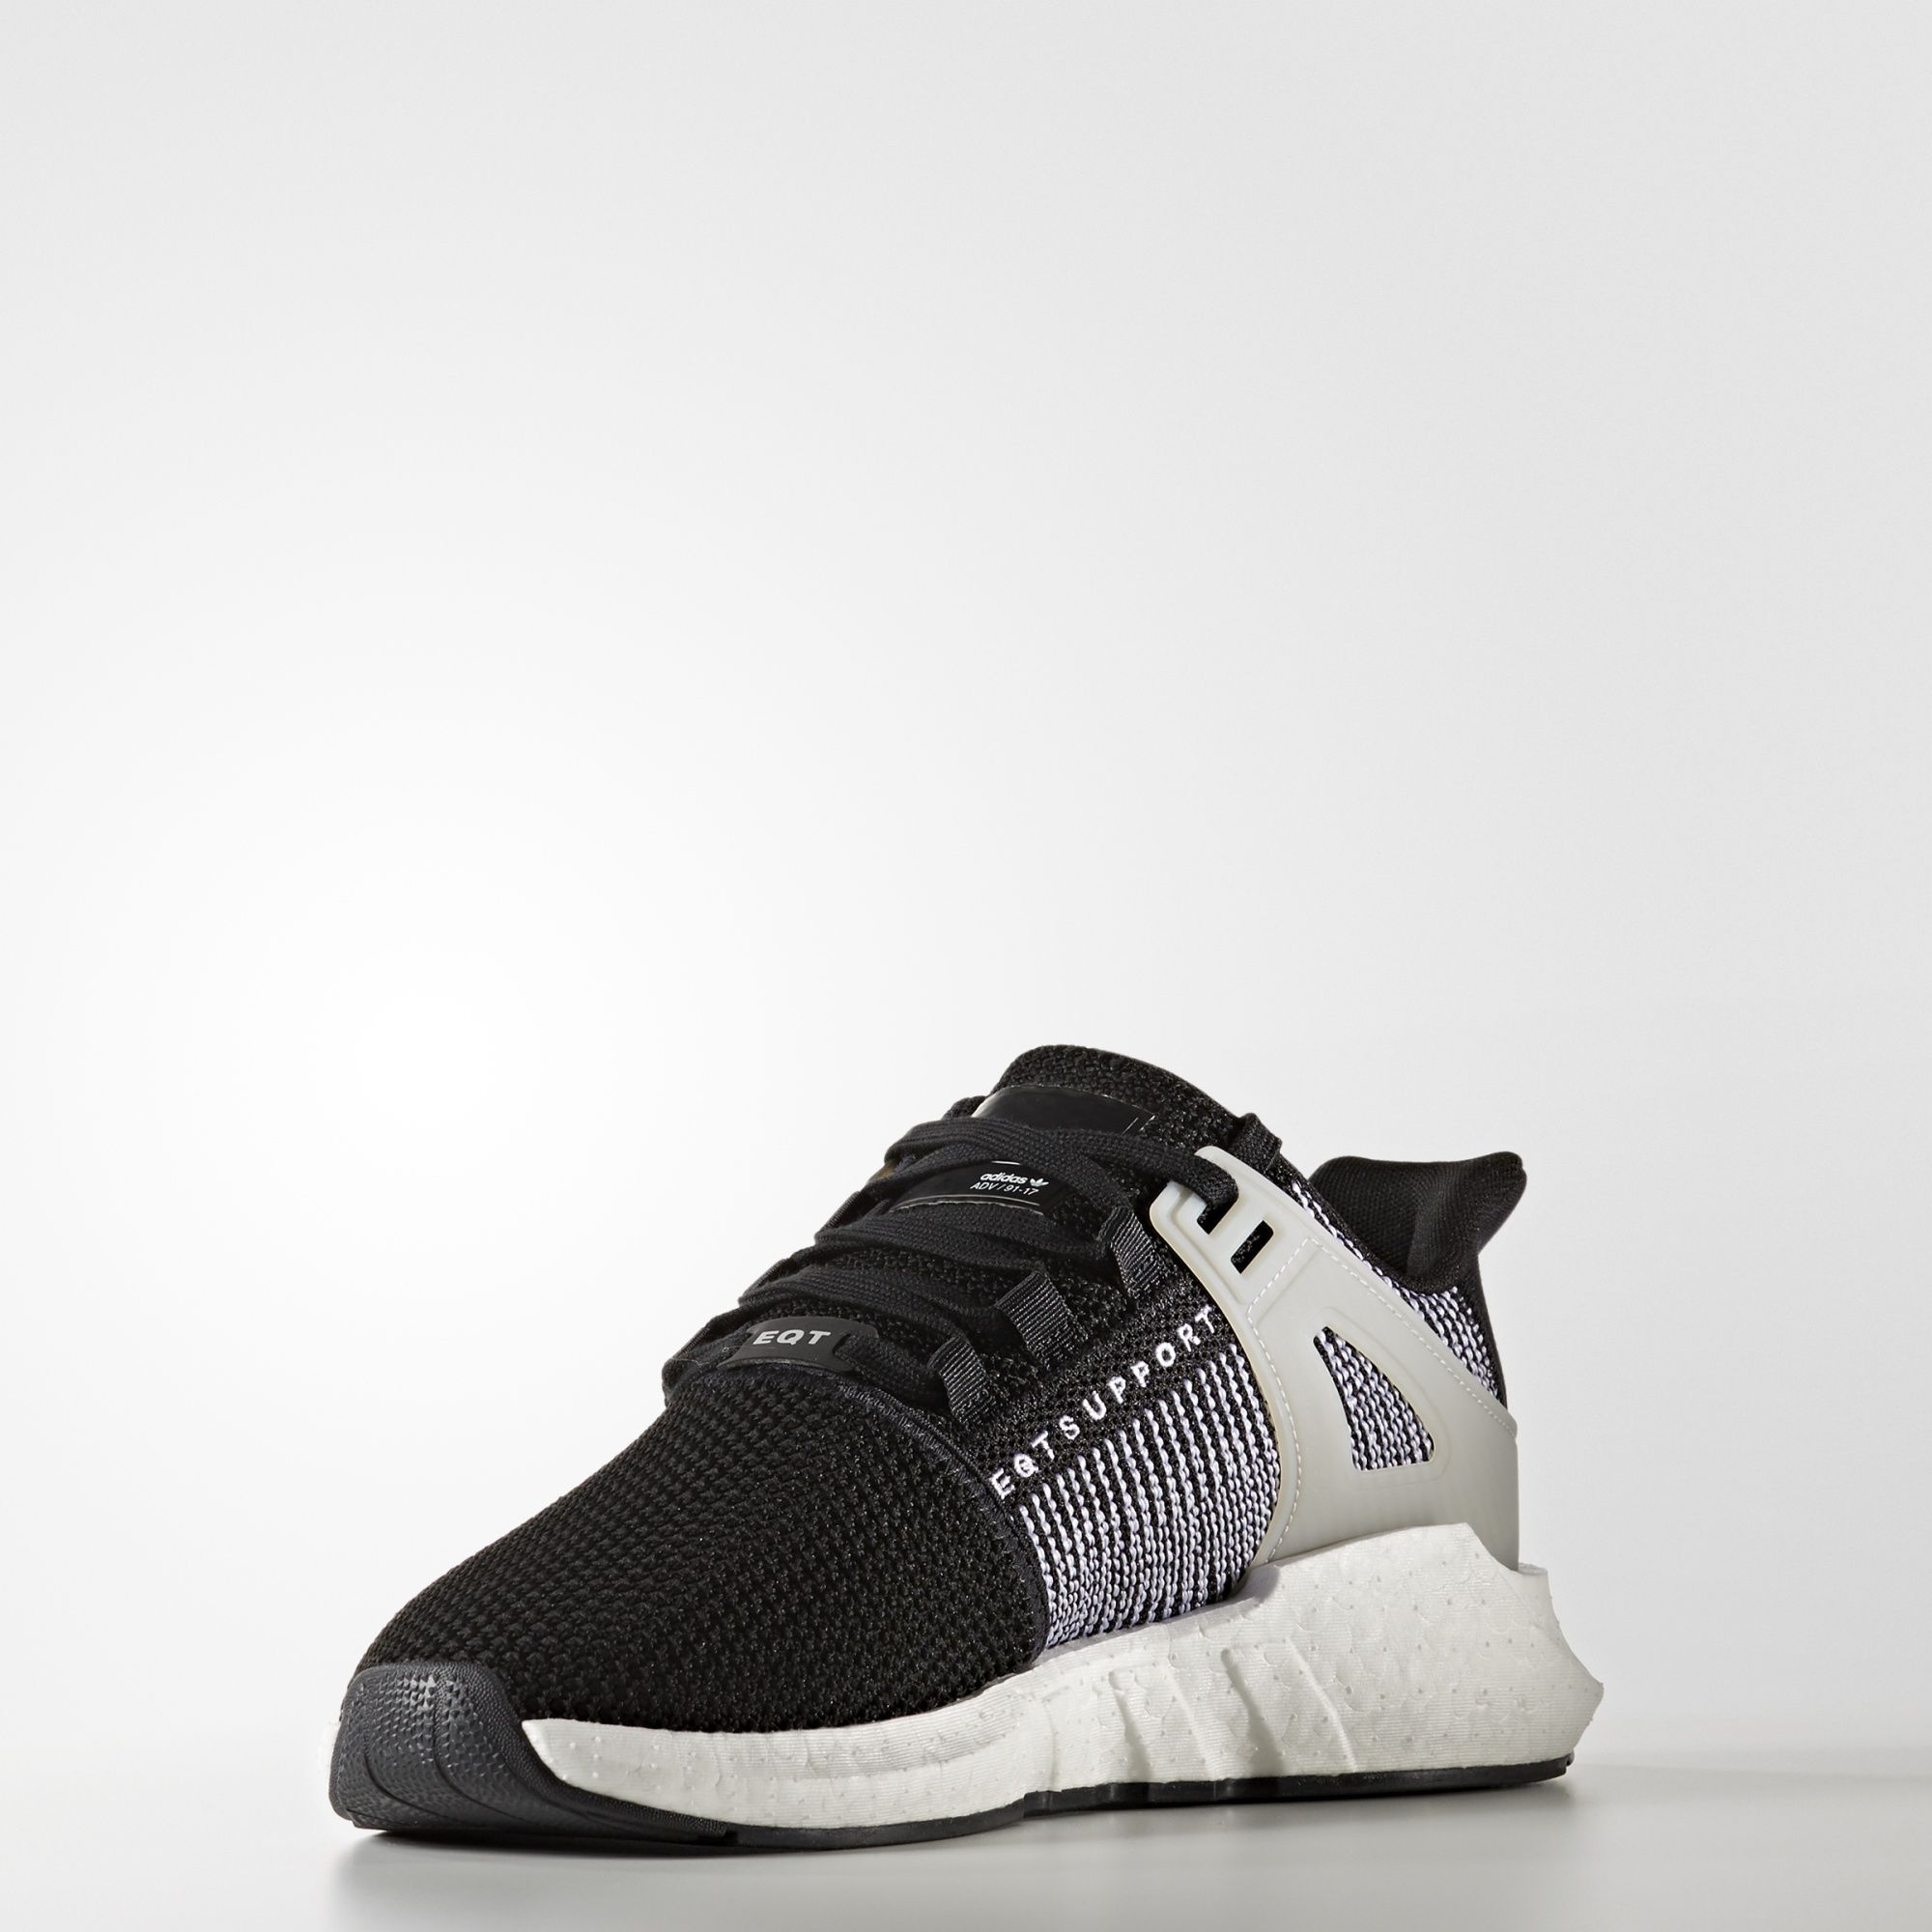 BY9509 adidas EQT Support 93 17 Black White 2